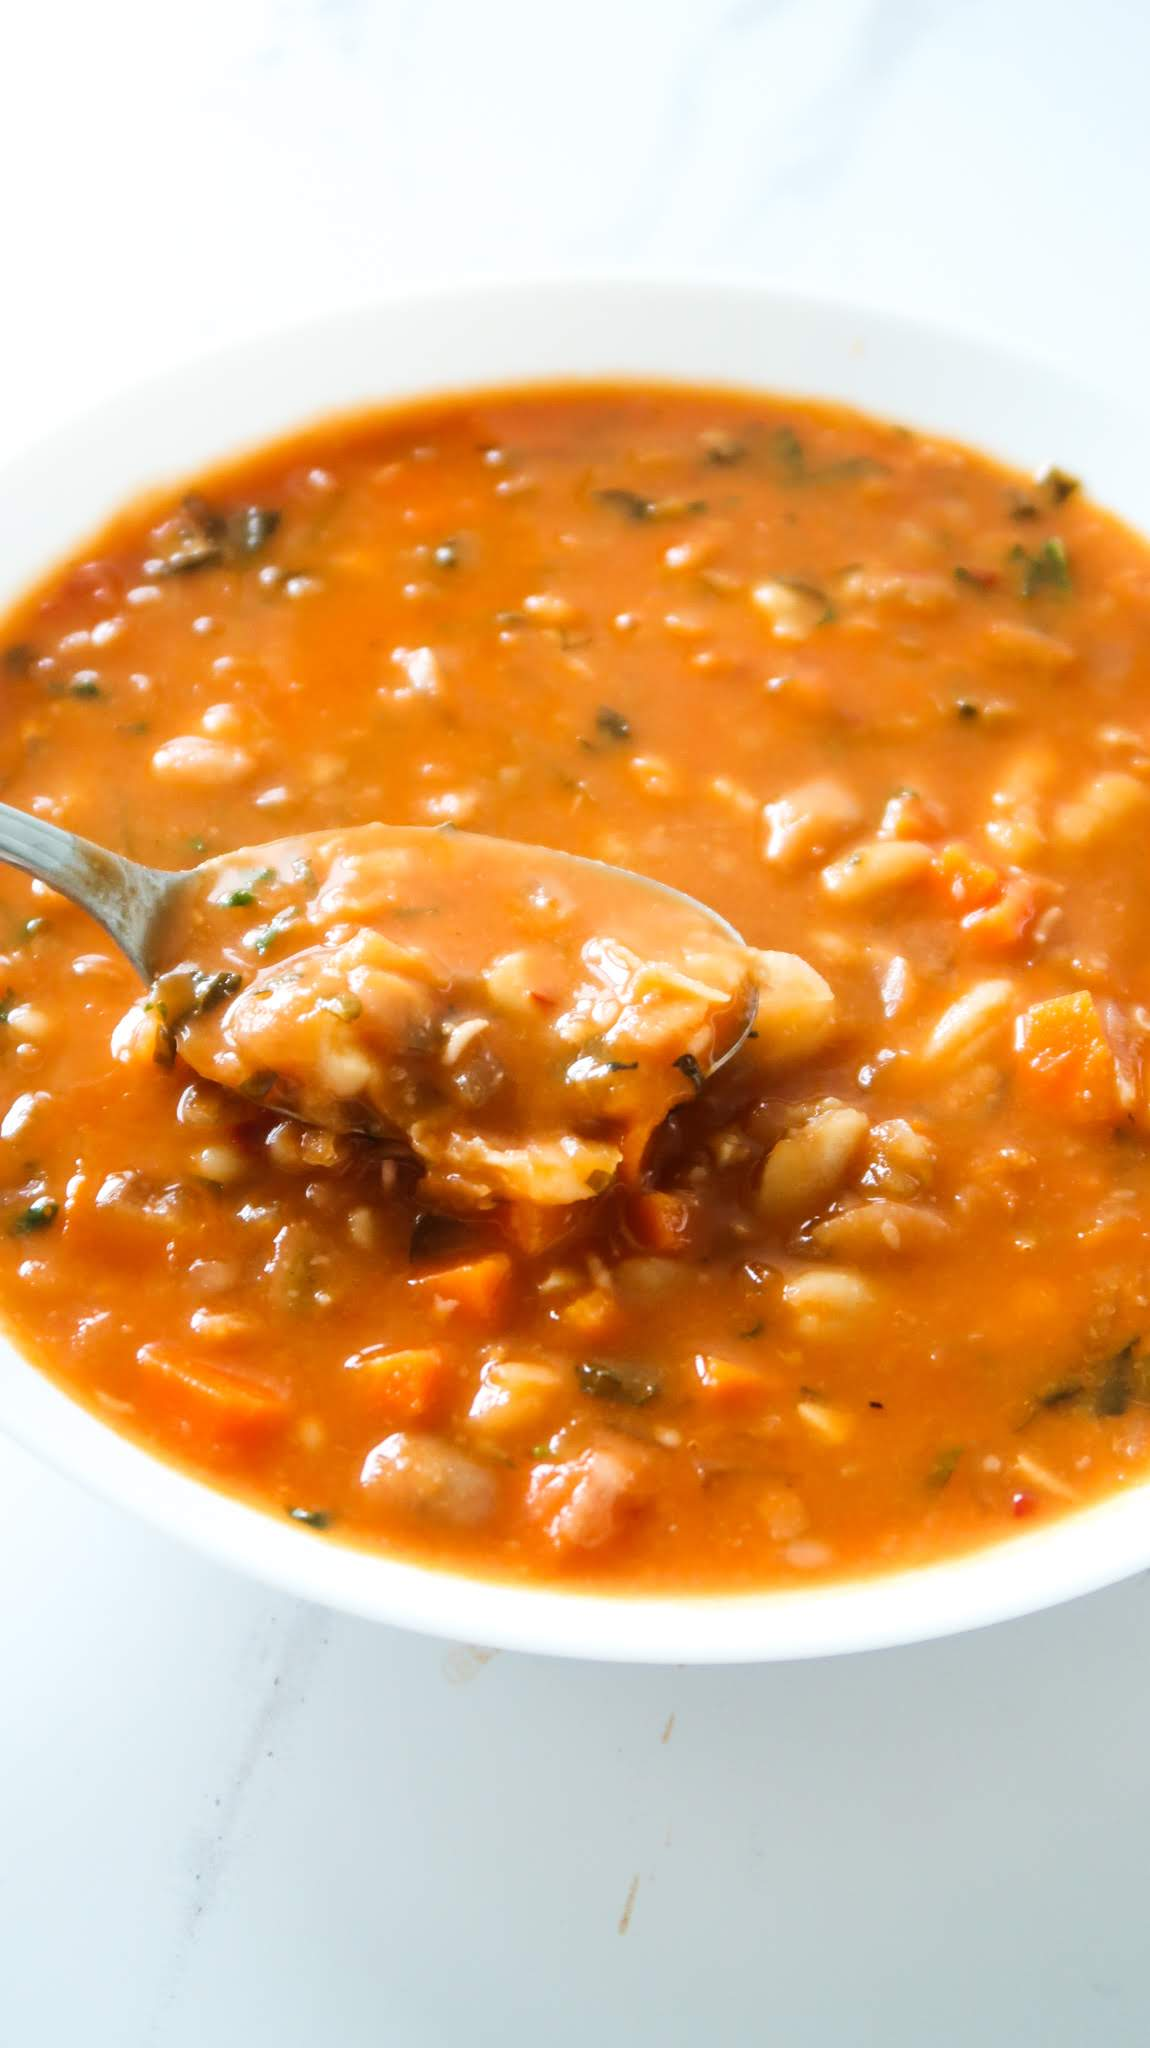 20-Minute Healthy Bean Soup Recipe. This healthy and easy vegan bean soup recipe is warming and super delicious. It is also gluten-free and high fiber.